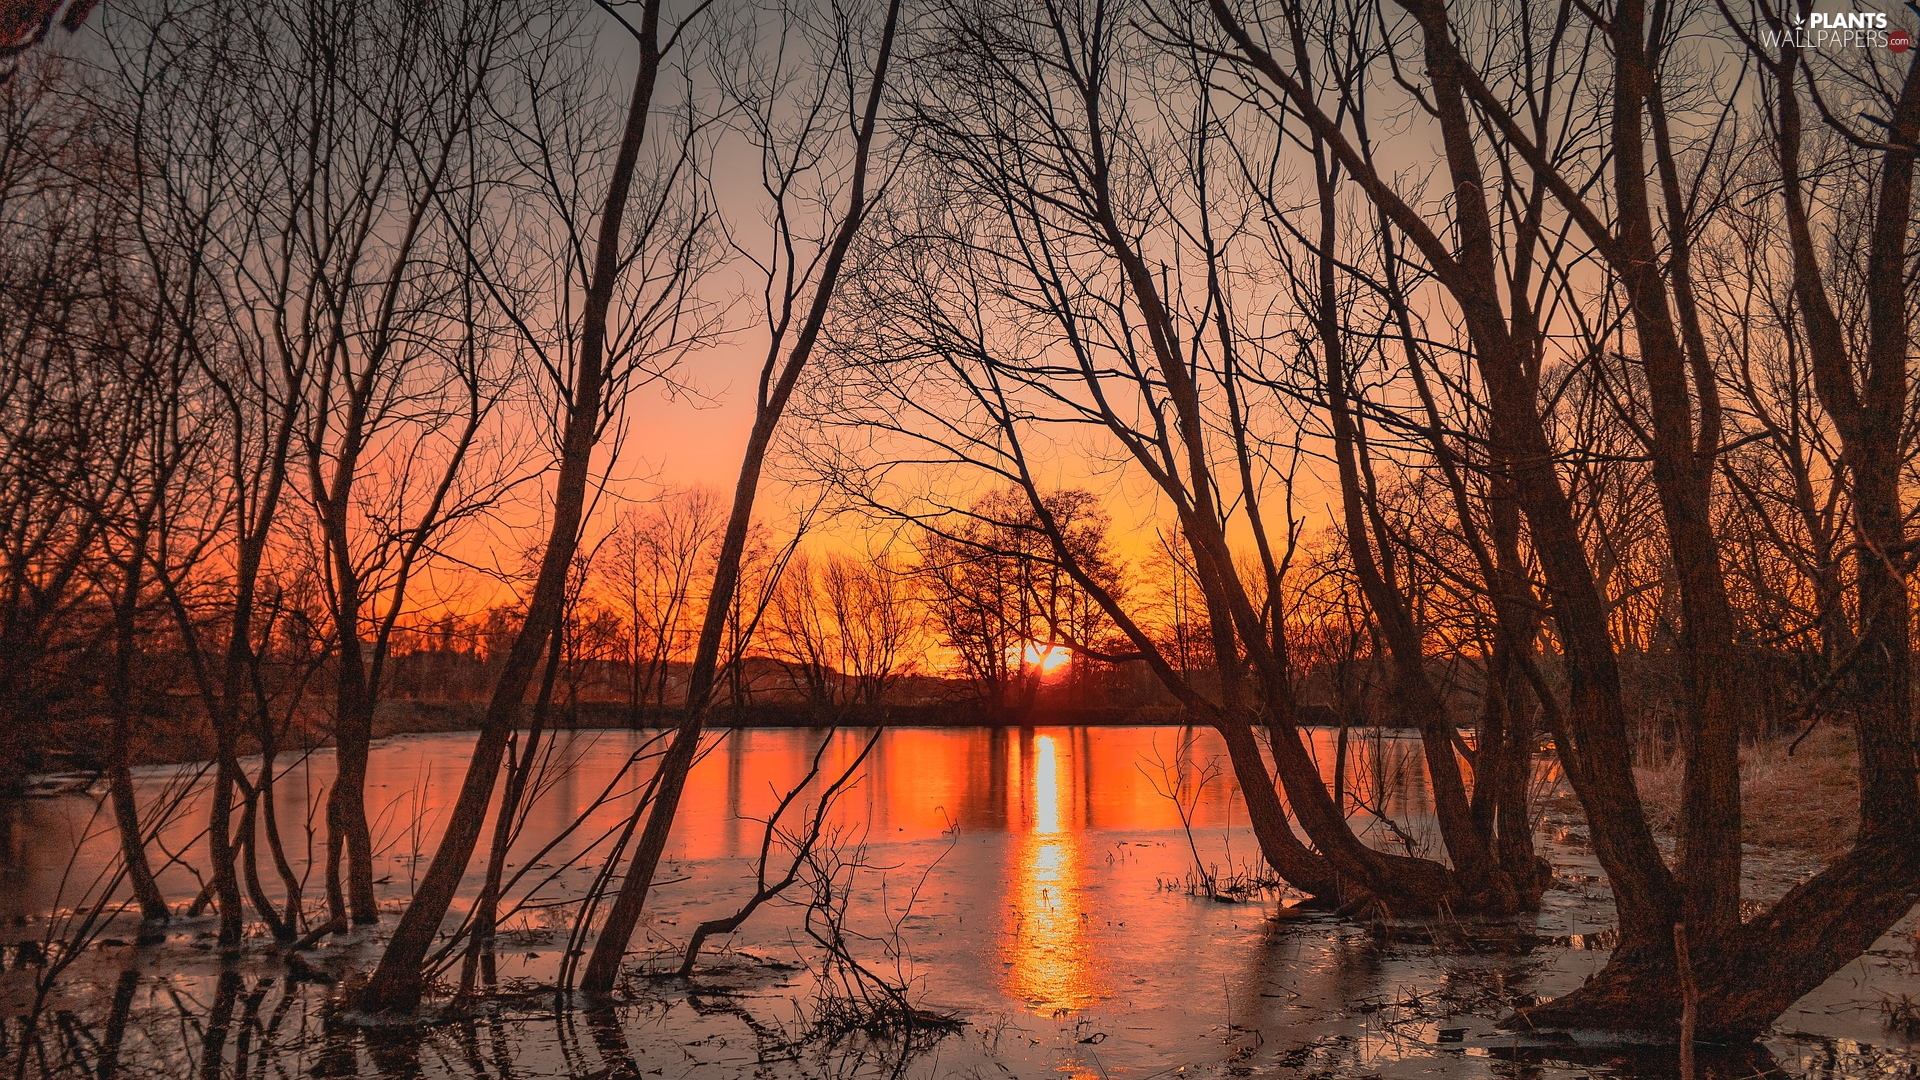 trees, Pond - car, autumn, Great Sunsets, viewes, leafless